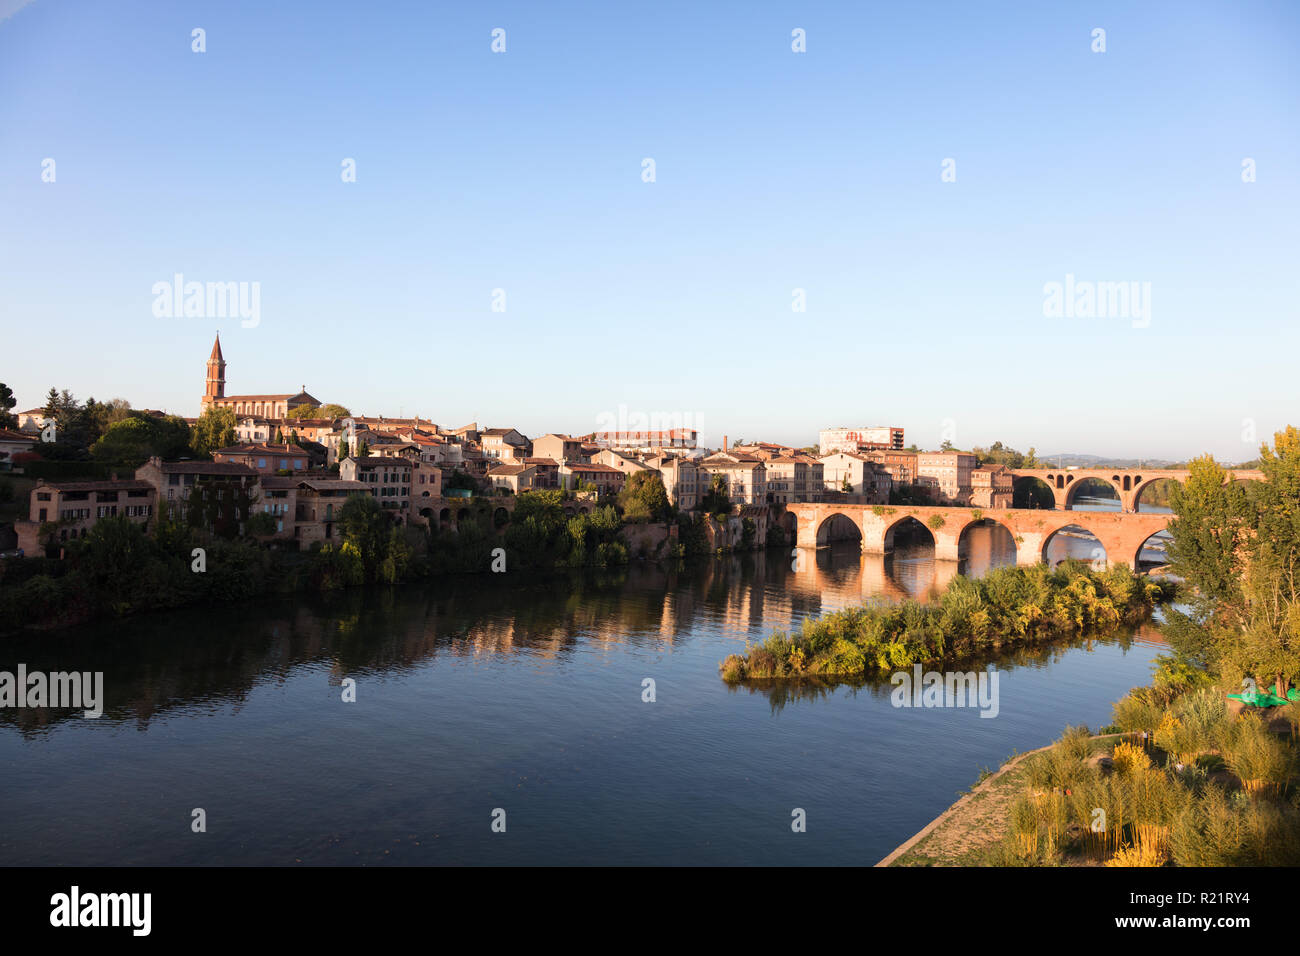 View of the banks of the Tarn, Albi, France Stock Photo